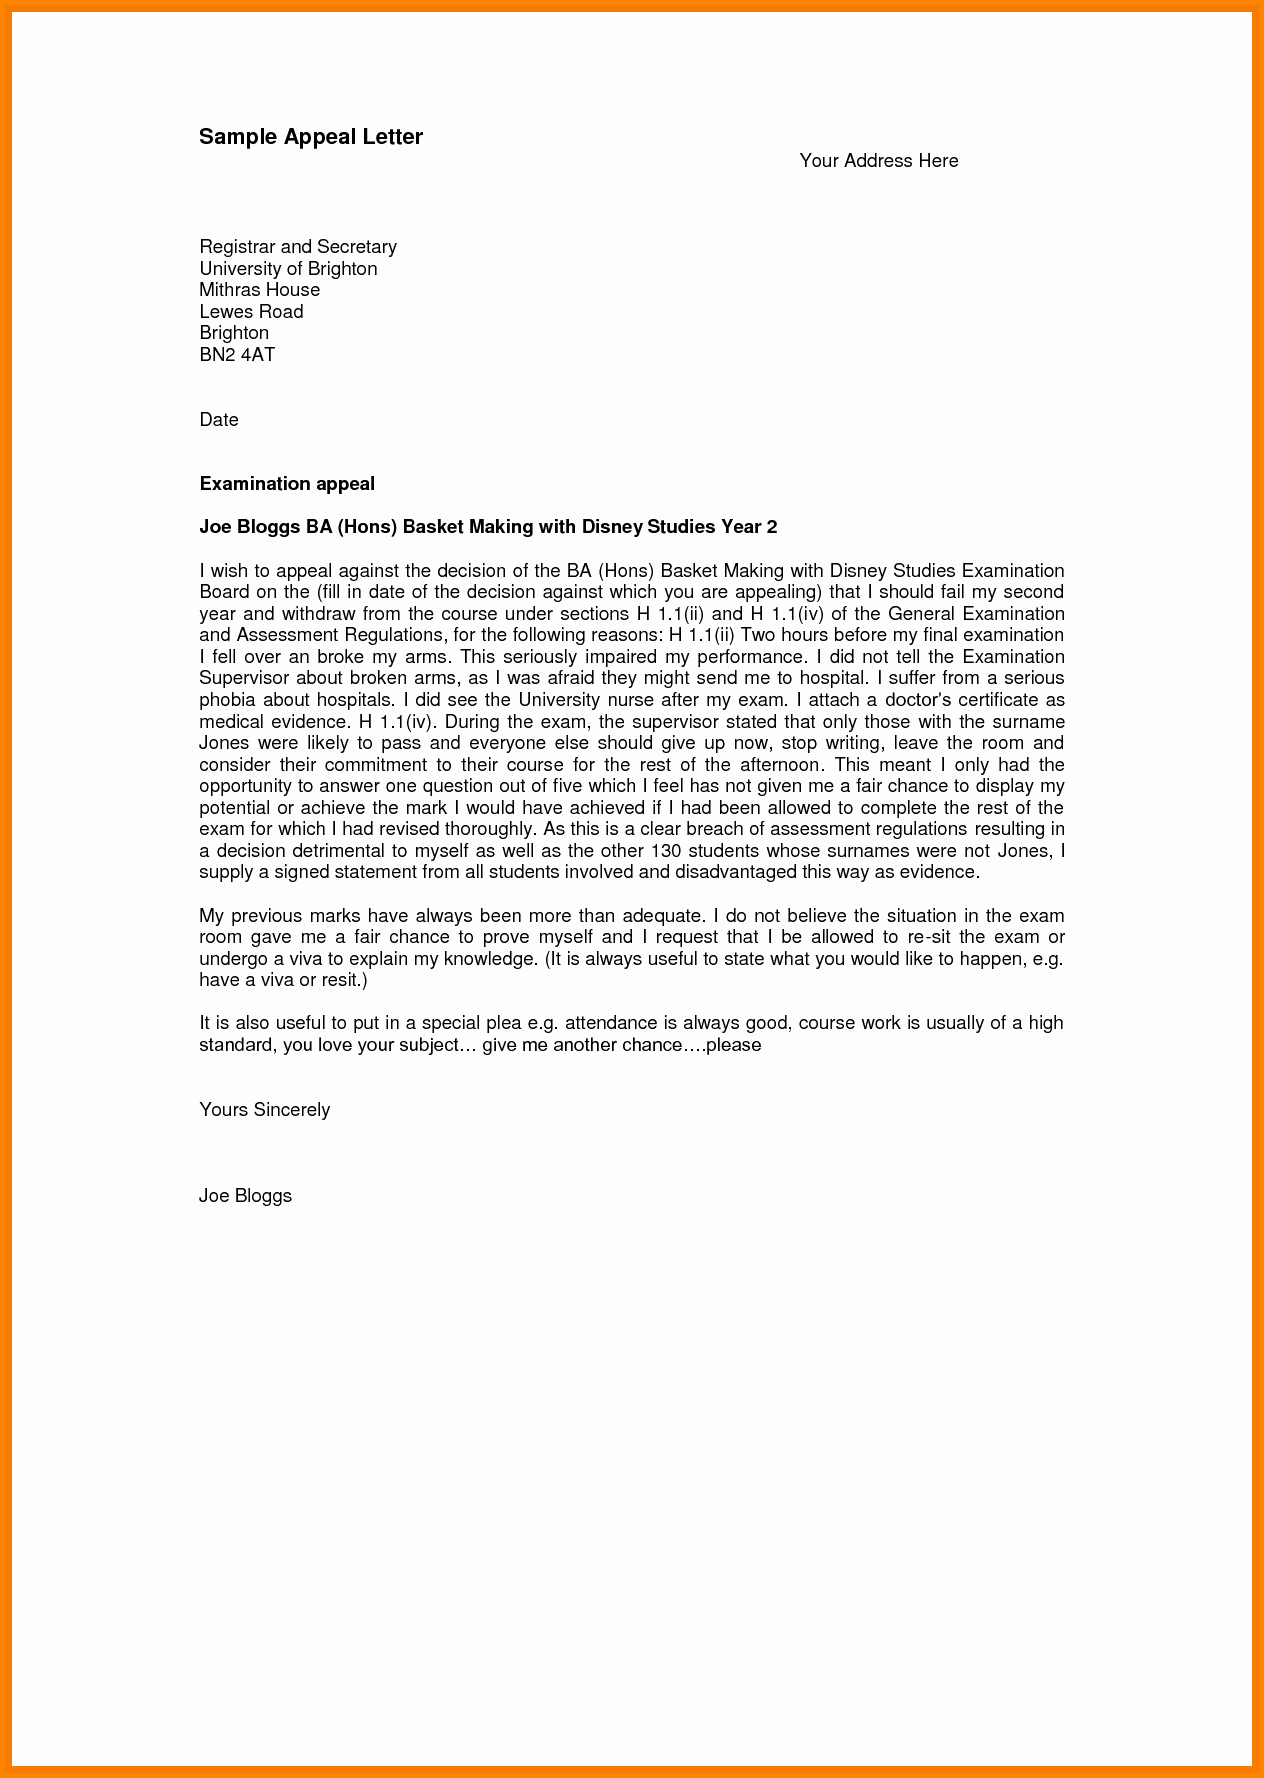 Sample Sap Appeal Letter Inspirational 12 Sap Appeal Letter Template